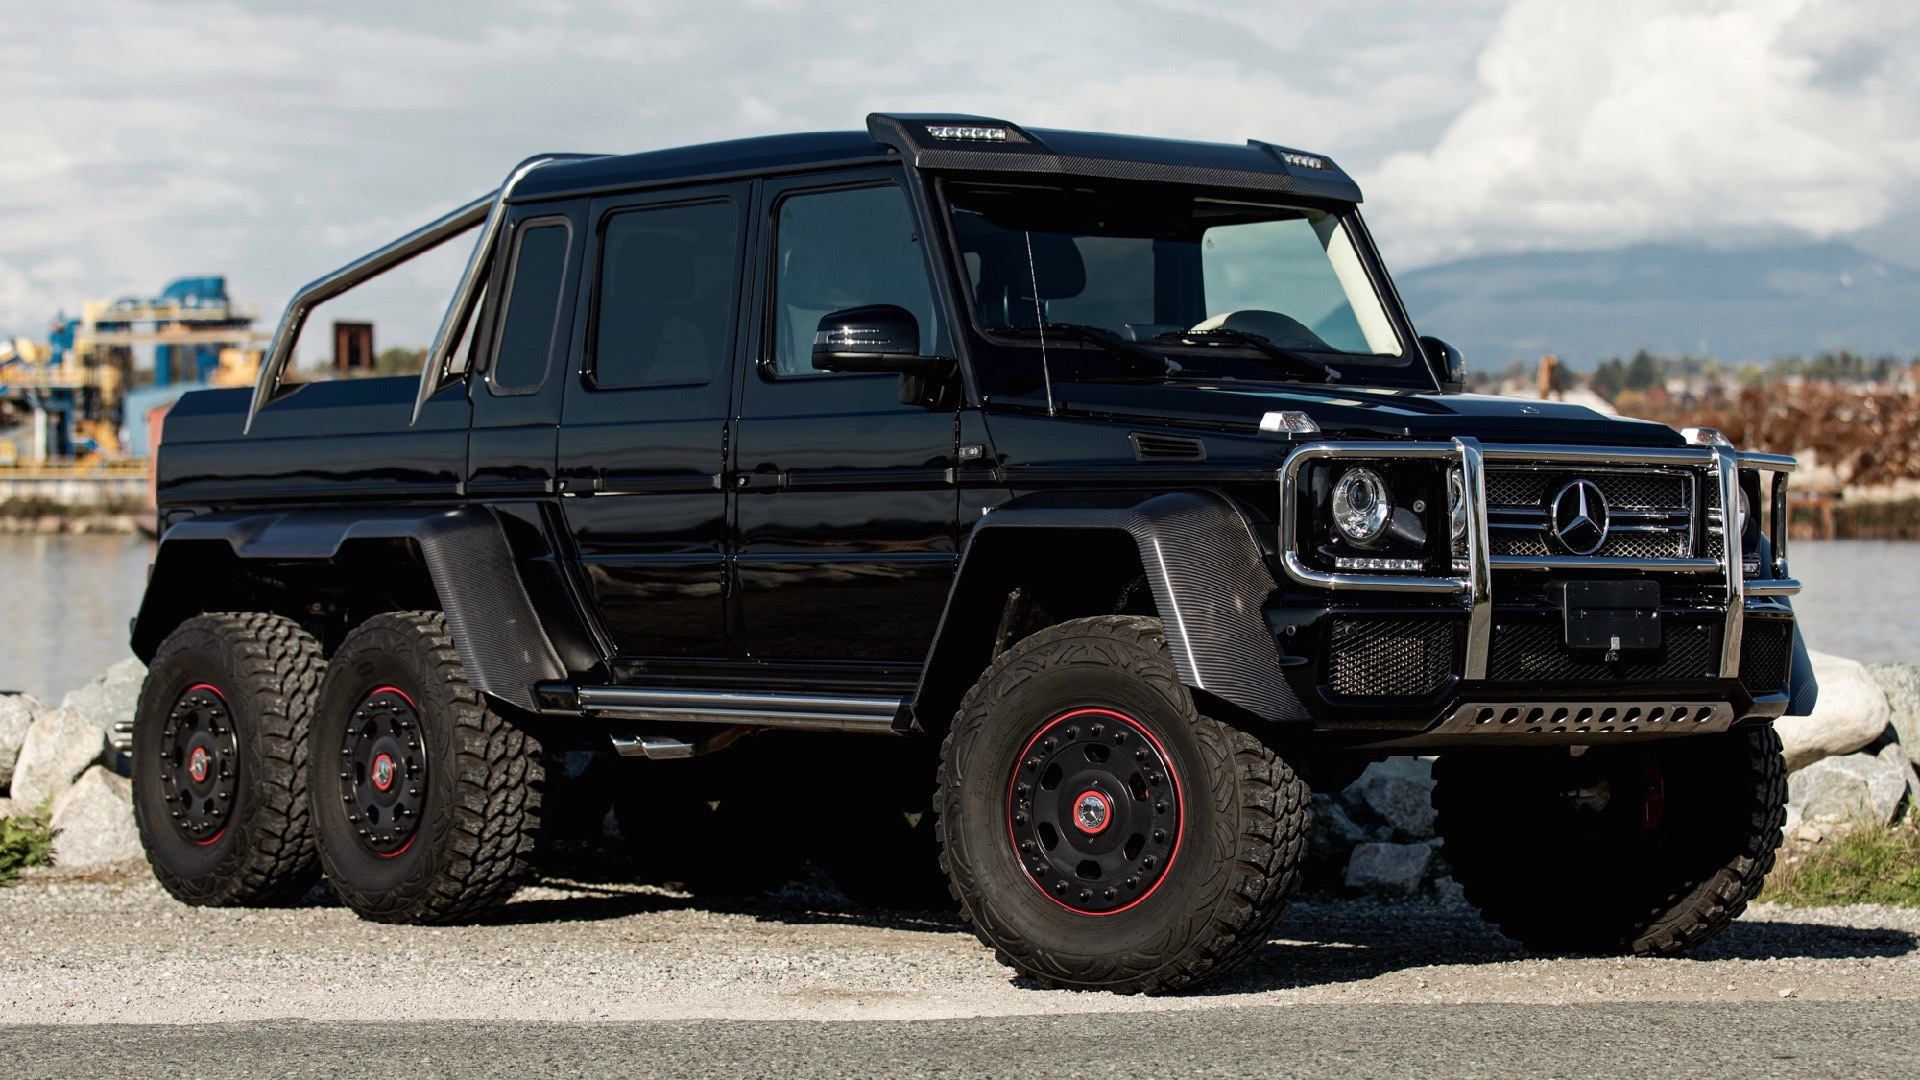 2014 Mercedes-Benz G63 AMG 6x6 (Photo by Bring a Trailer)